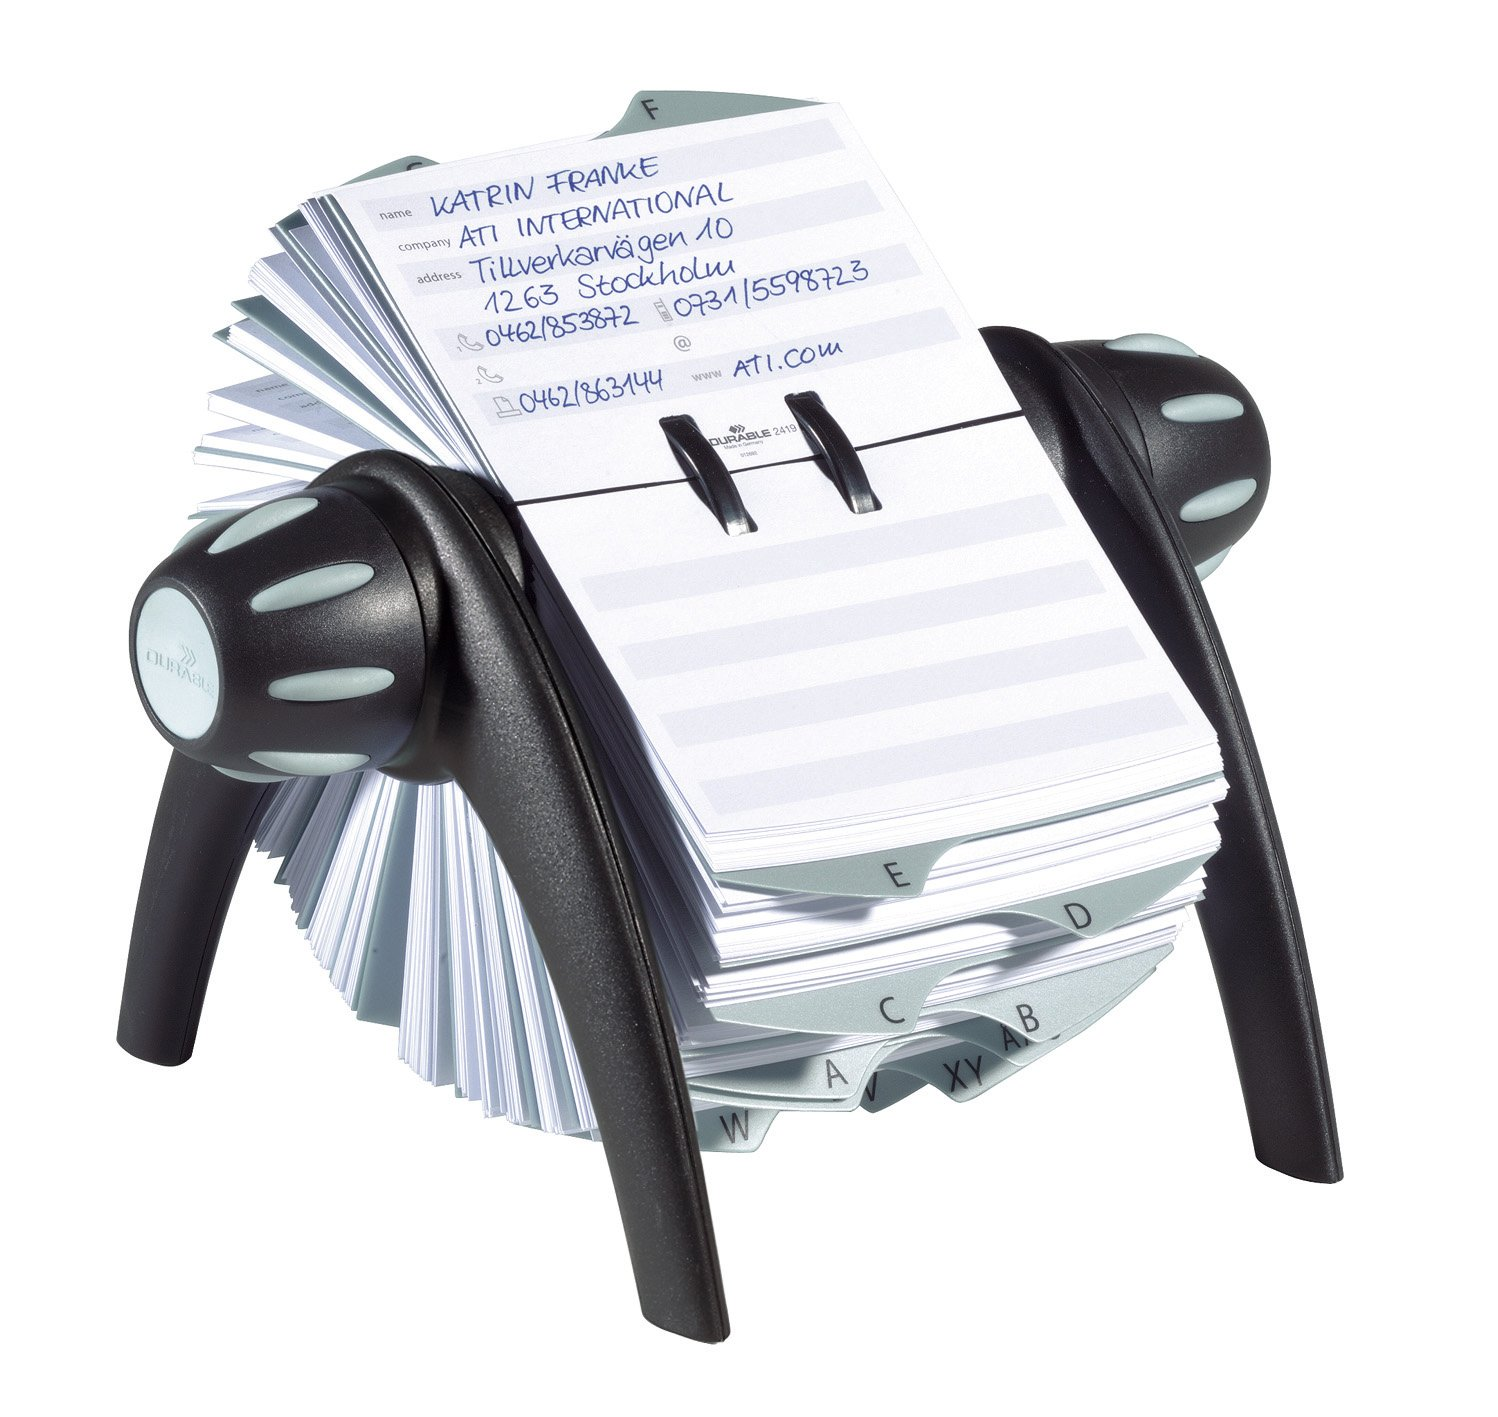 DURABLE TELINDEX, Black Flip Rotary Address Card File, 500 Double-Sided Cards, 25 Alphabetical Dividers (241601)